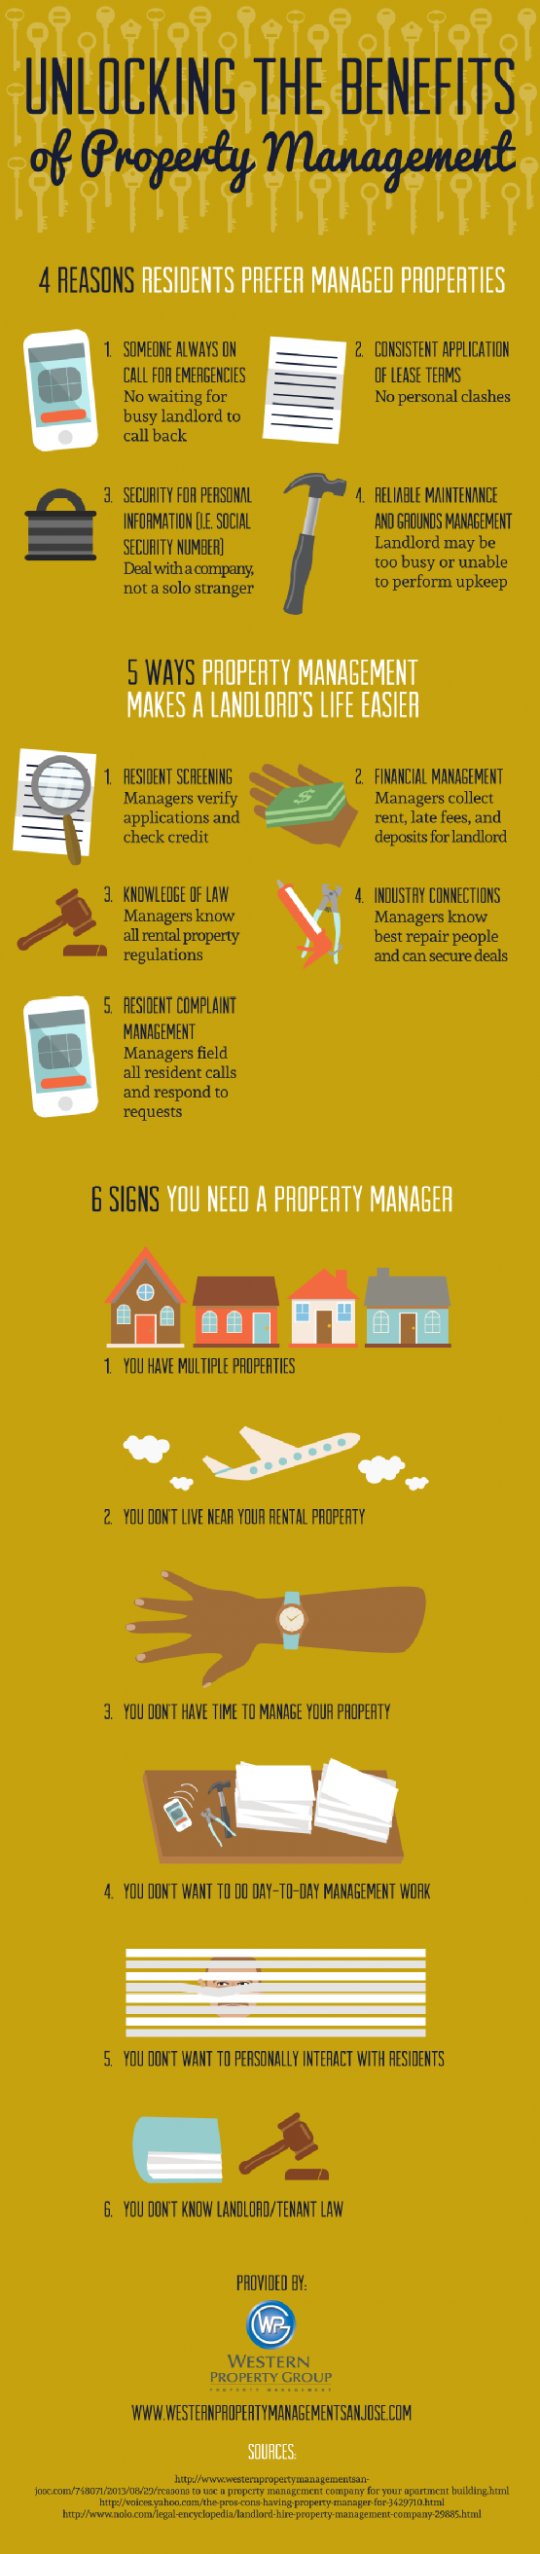 Unlocking the Benefits of Property Management